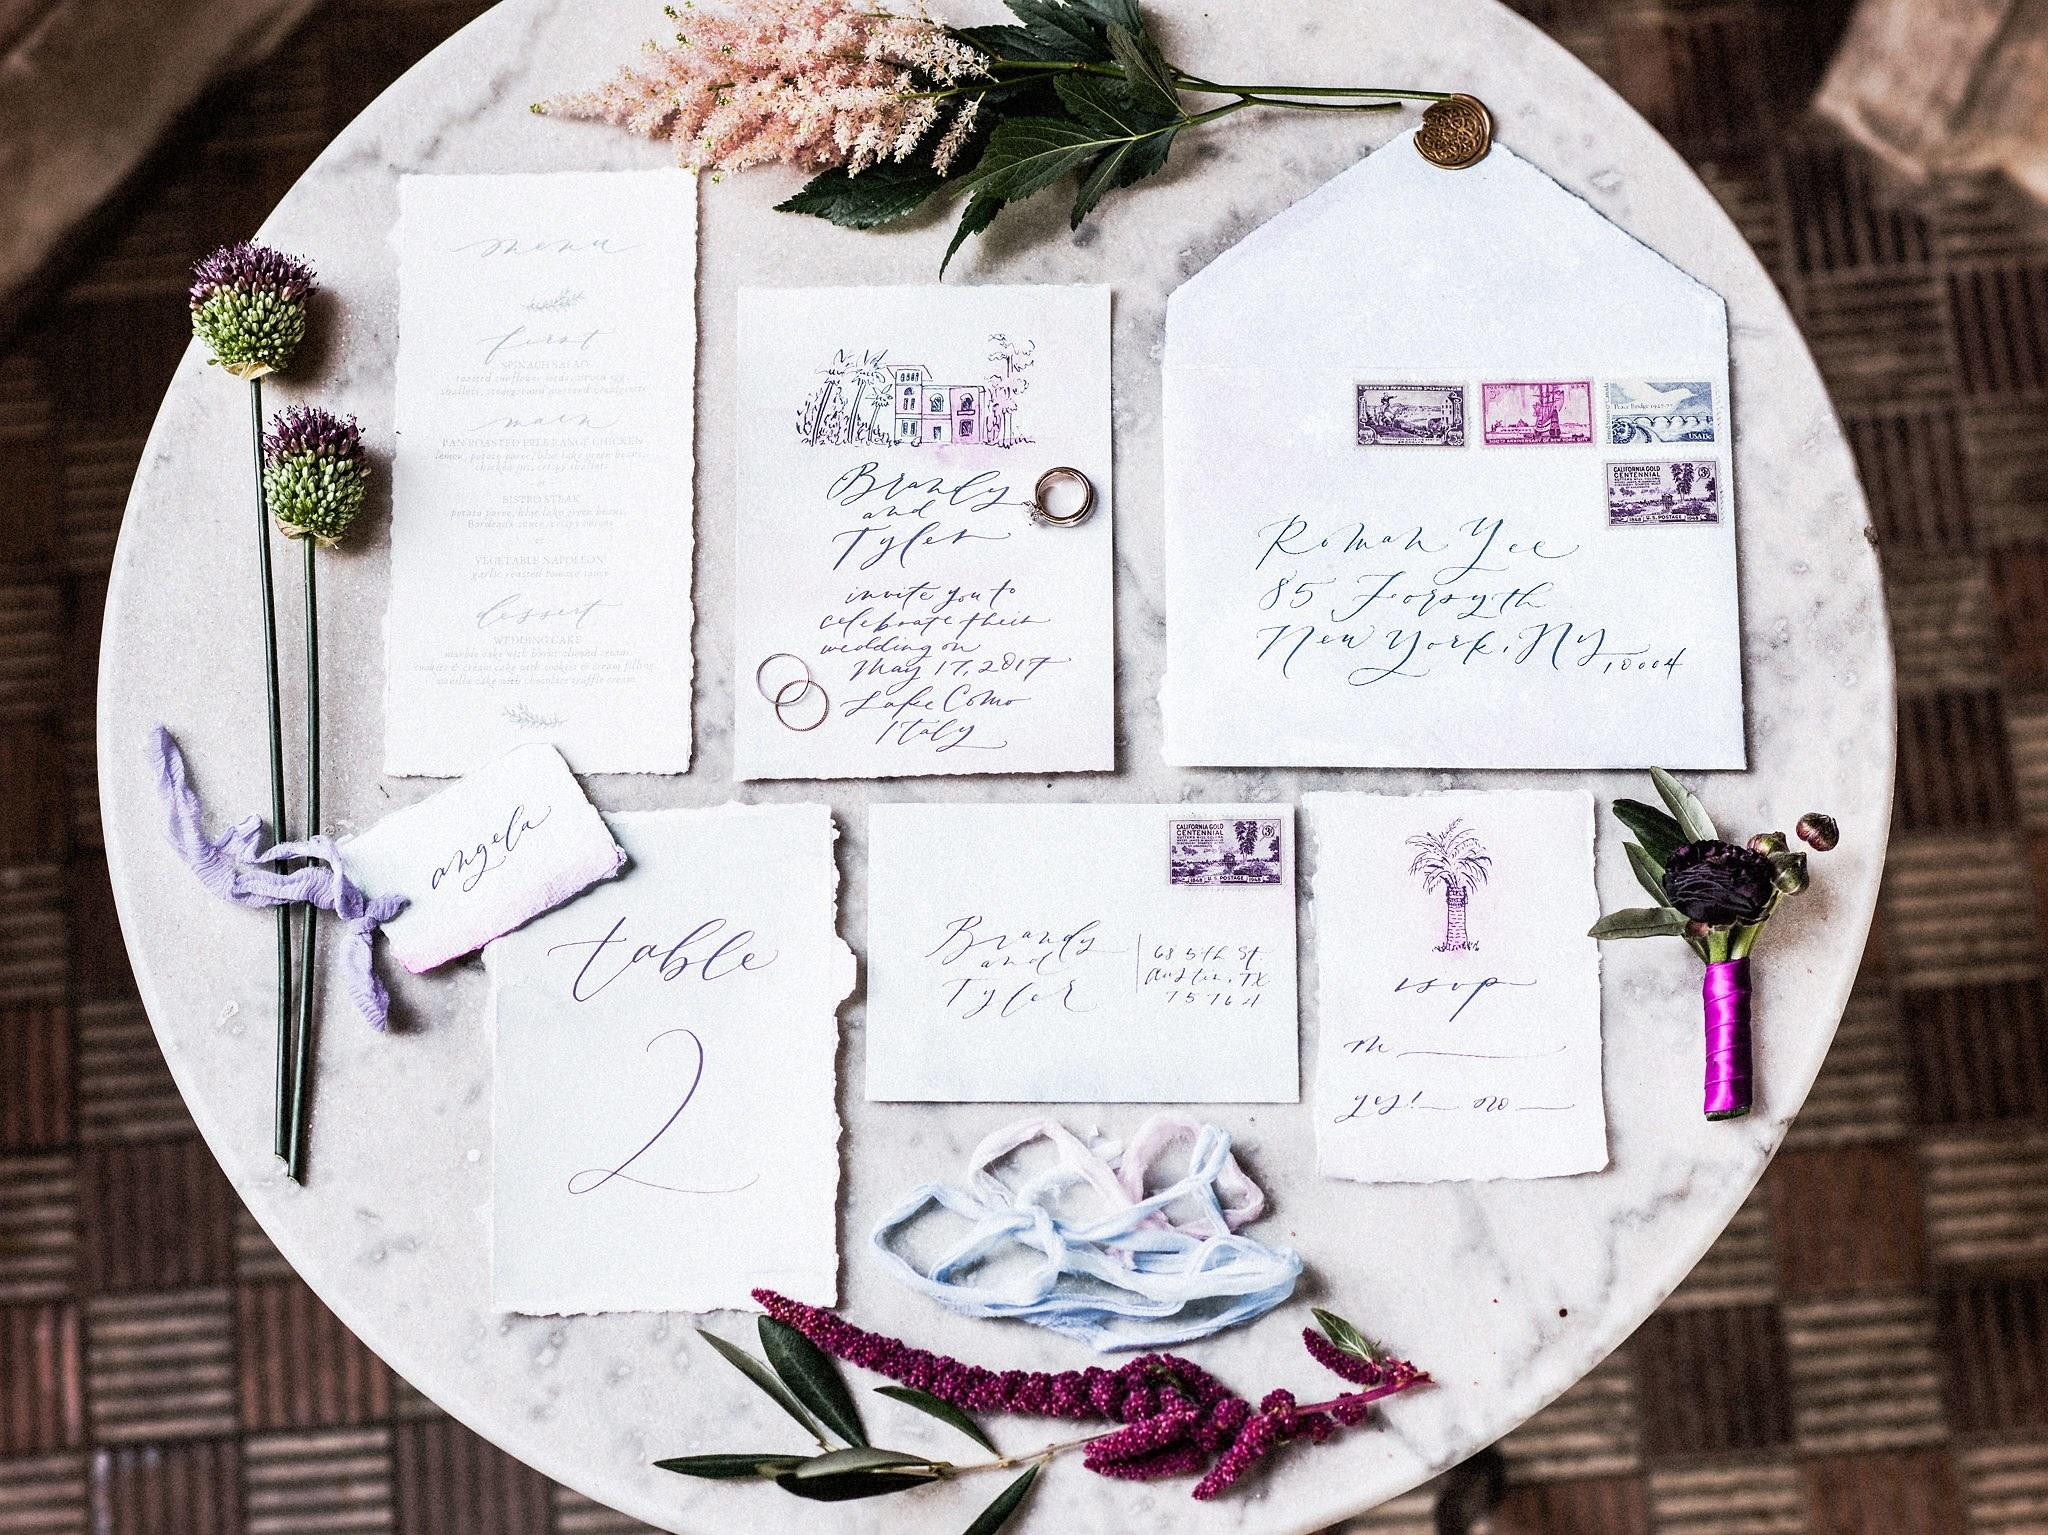 Design Your Own Wedding Invite: 10 Amazing Wedding Invitations Websites To Create Your Own